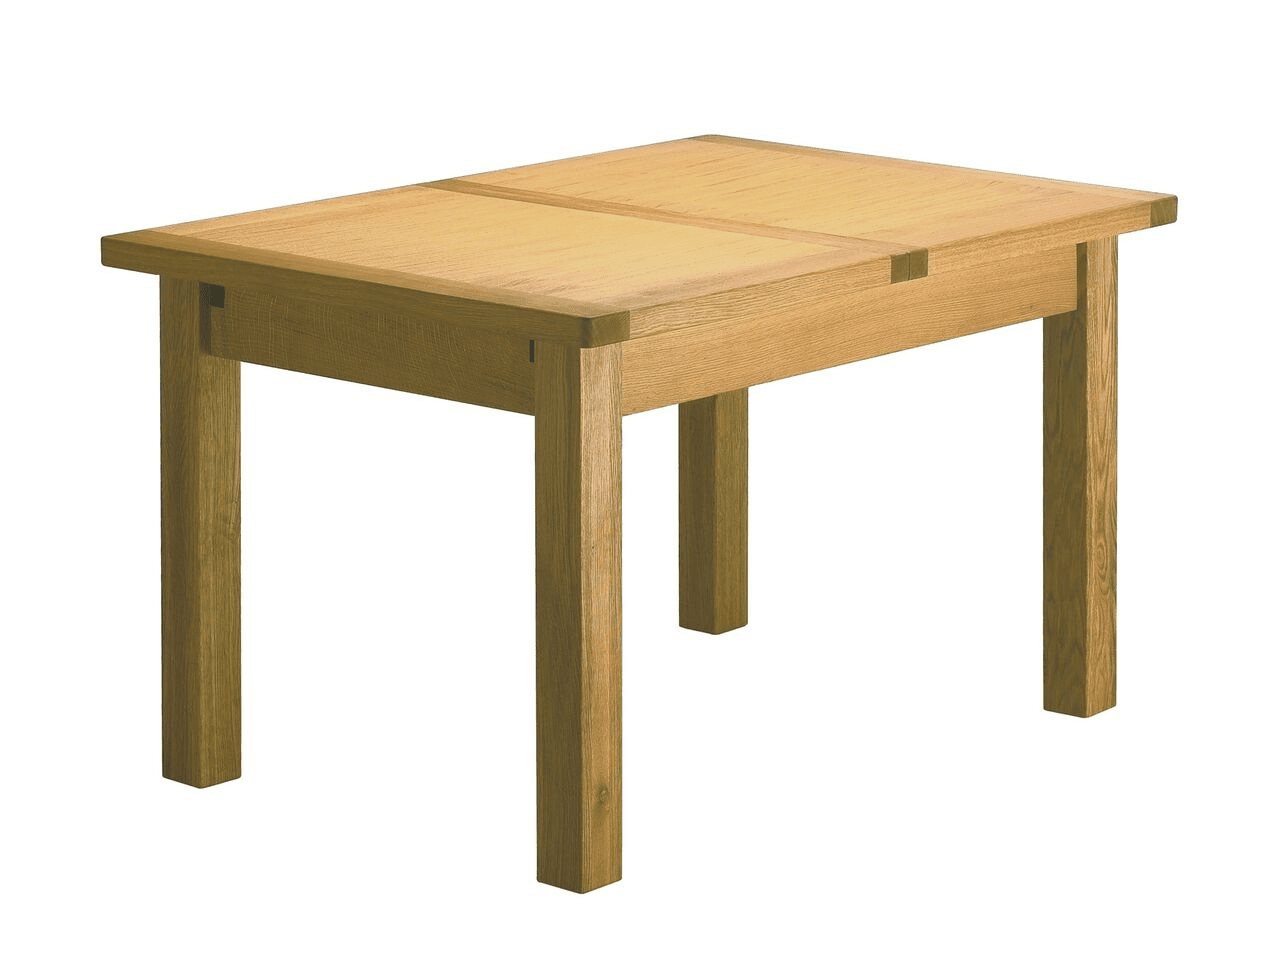 Brittany 1300 table